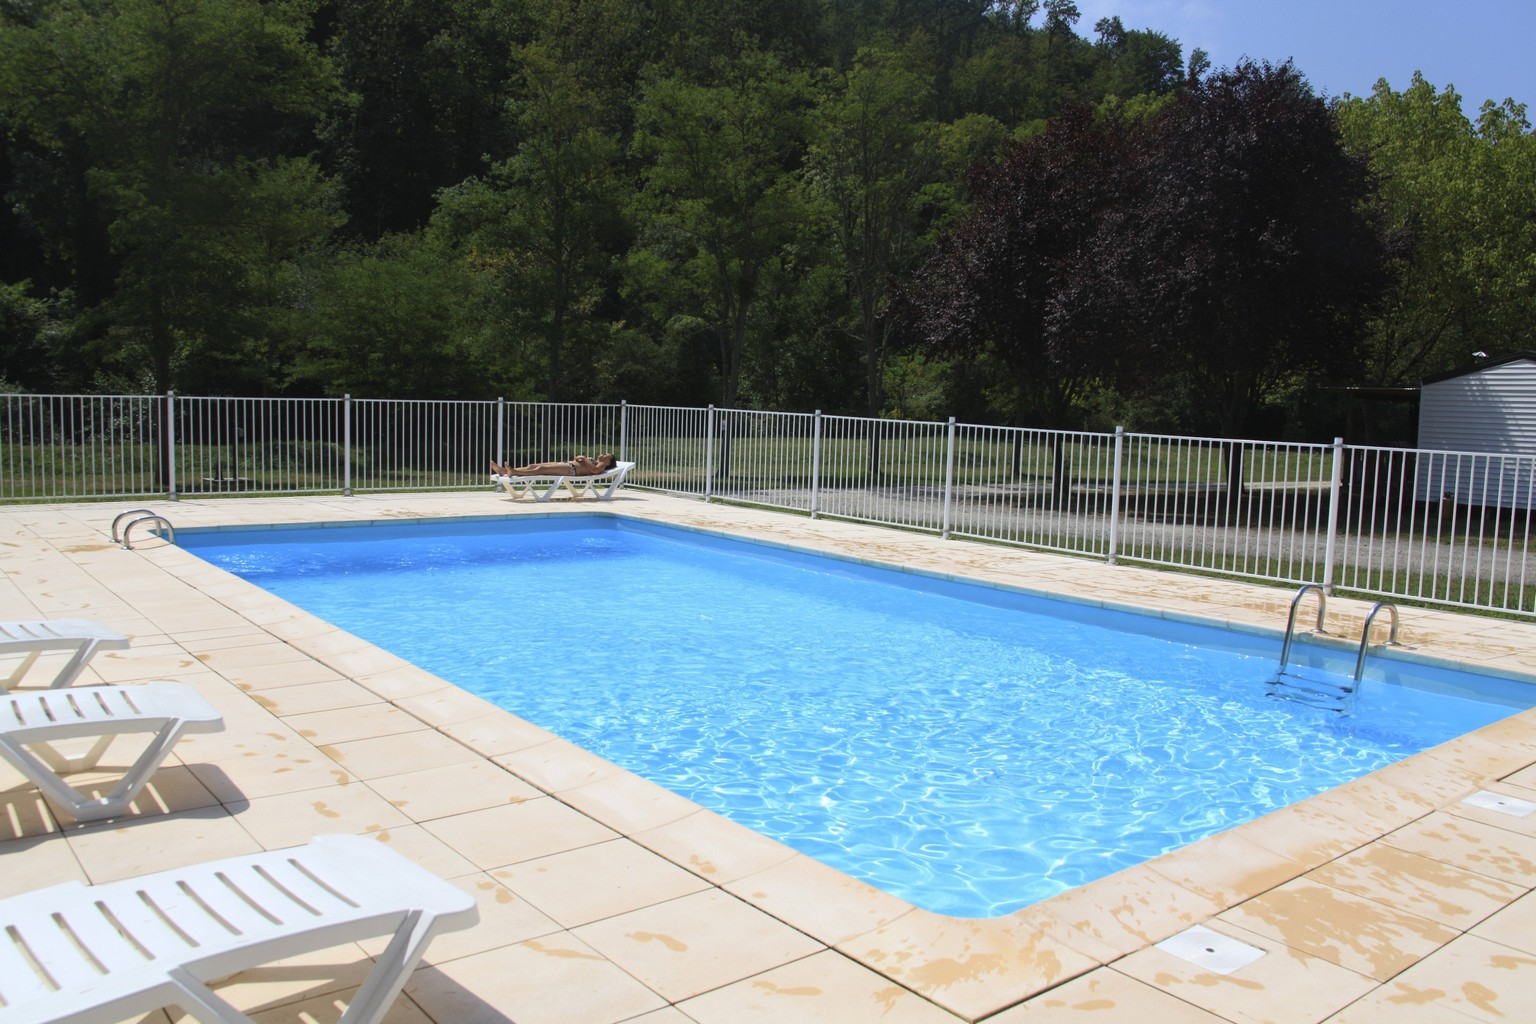 Barri res de protection de piscine faire le bon choix for Barriere de protection piscine